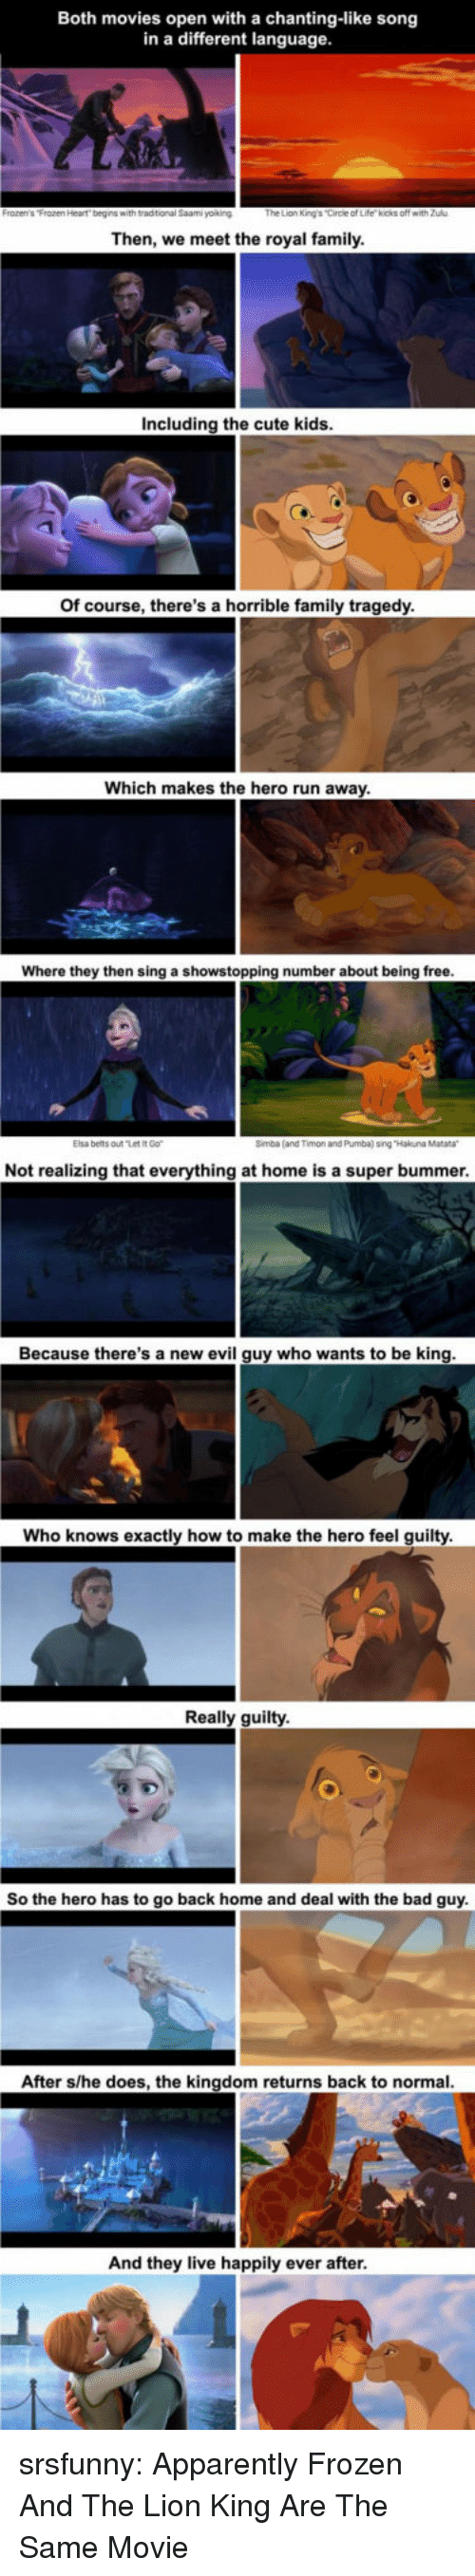 Apparently, Bad, and Cute: Both movies open with a chanting-like song  in a different language  Then, we meet the royal family  Including the cute kids  Of course, there's a horrible family tragedy  Which makes the hero run away  Where they then sing a showstopping number about being free  Elsa belts outt  Simba (and Timon and Pumba) sing Hakuna Matara  Not realizing that everything at home is a super bummer  Because there's a new evil guy who wants to be king  Who knows exactly how to make the hero feel guilty  Really guilty  So the hero has to go back home and deal with the bad guy  After s/he does, the kingdom returns back to normal  And they live happily ever after srsfunny:  Apparently Frozen And The Lion King Are The Same Movie